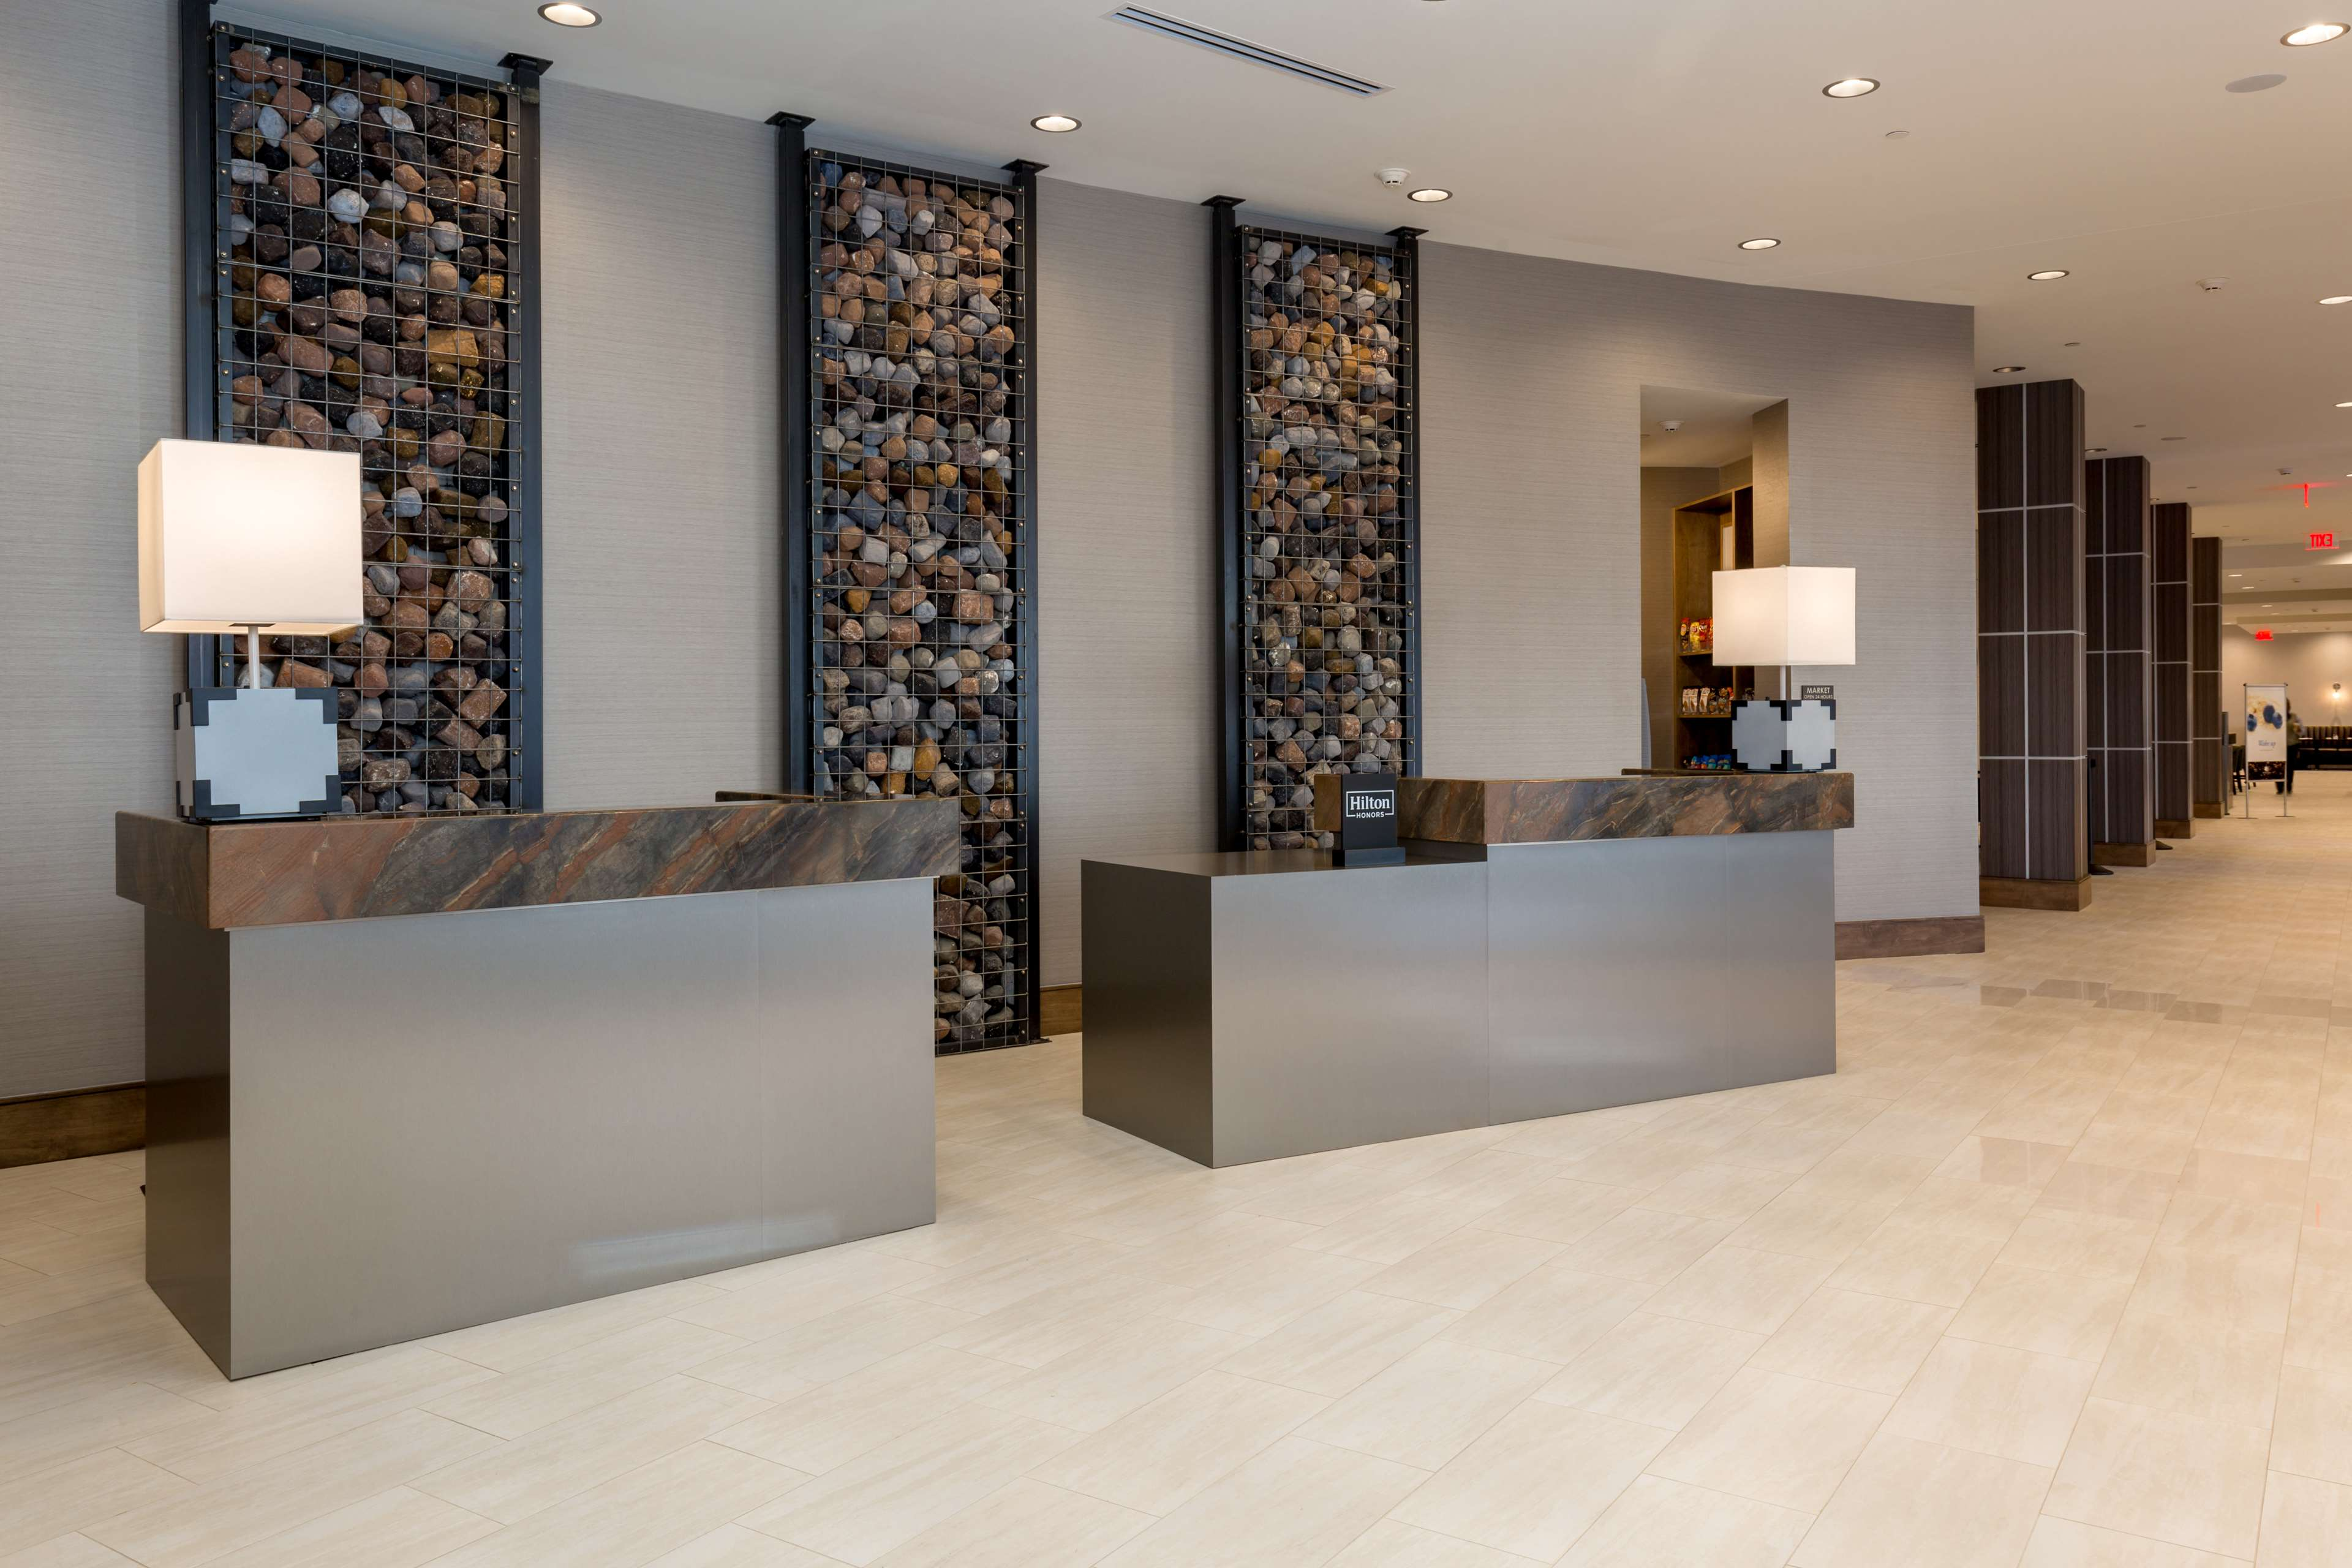 DoubleTree by Hilton Evansville image 6